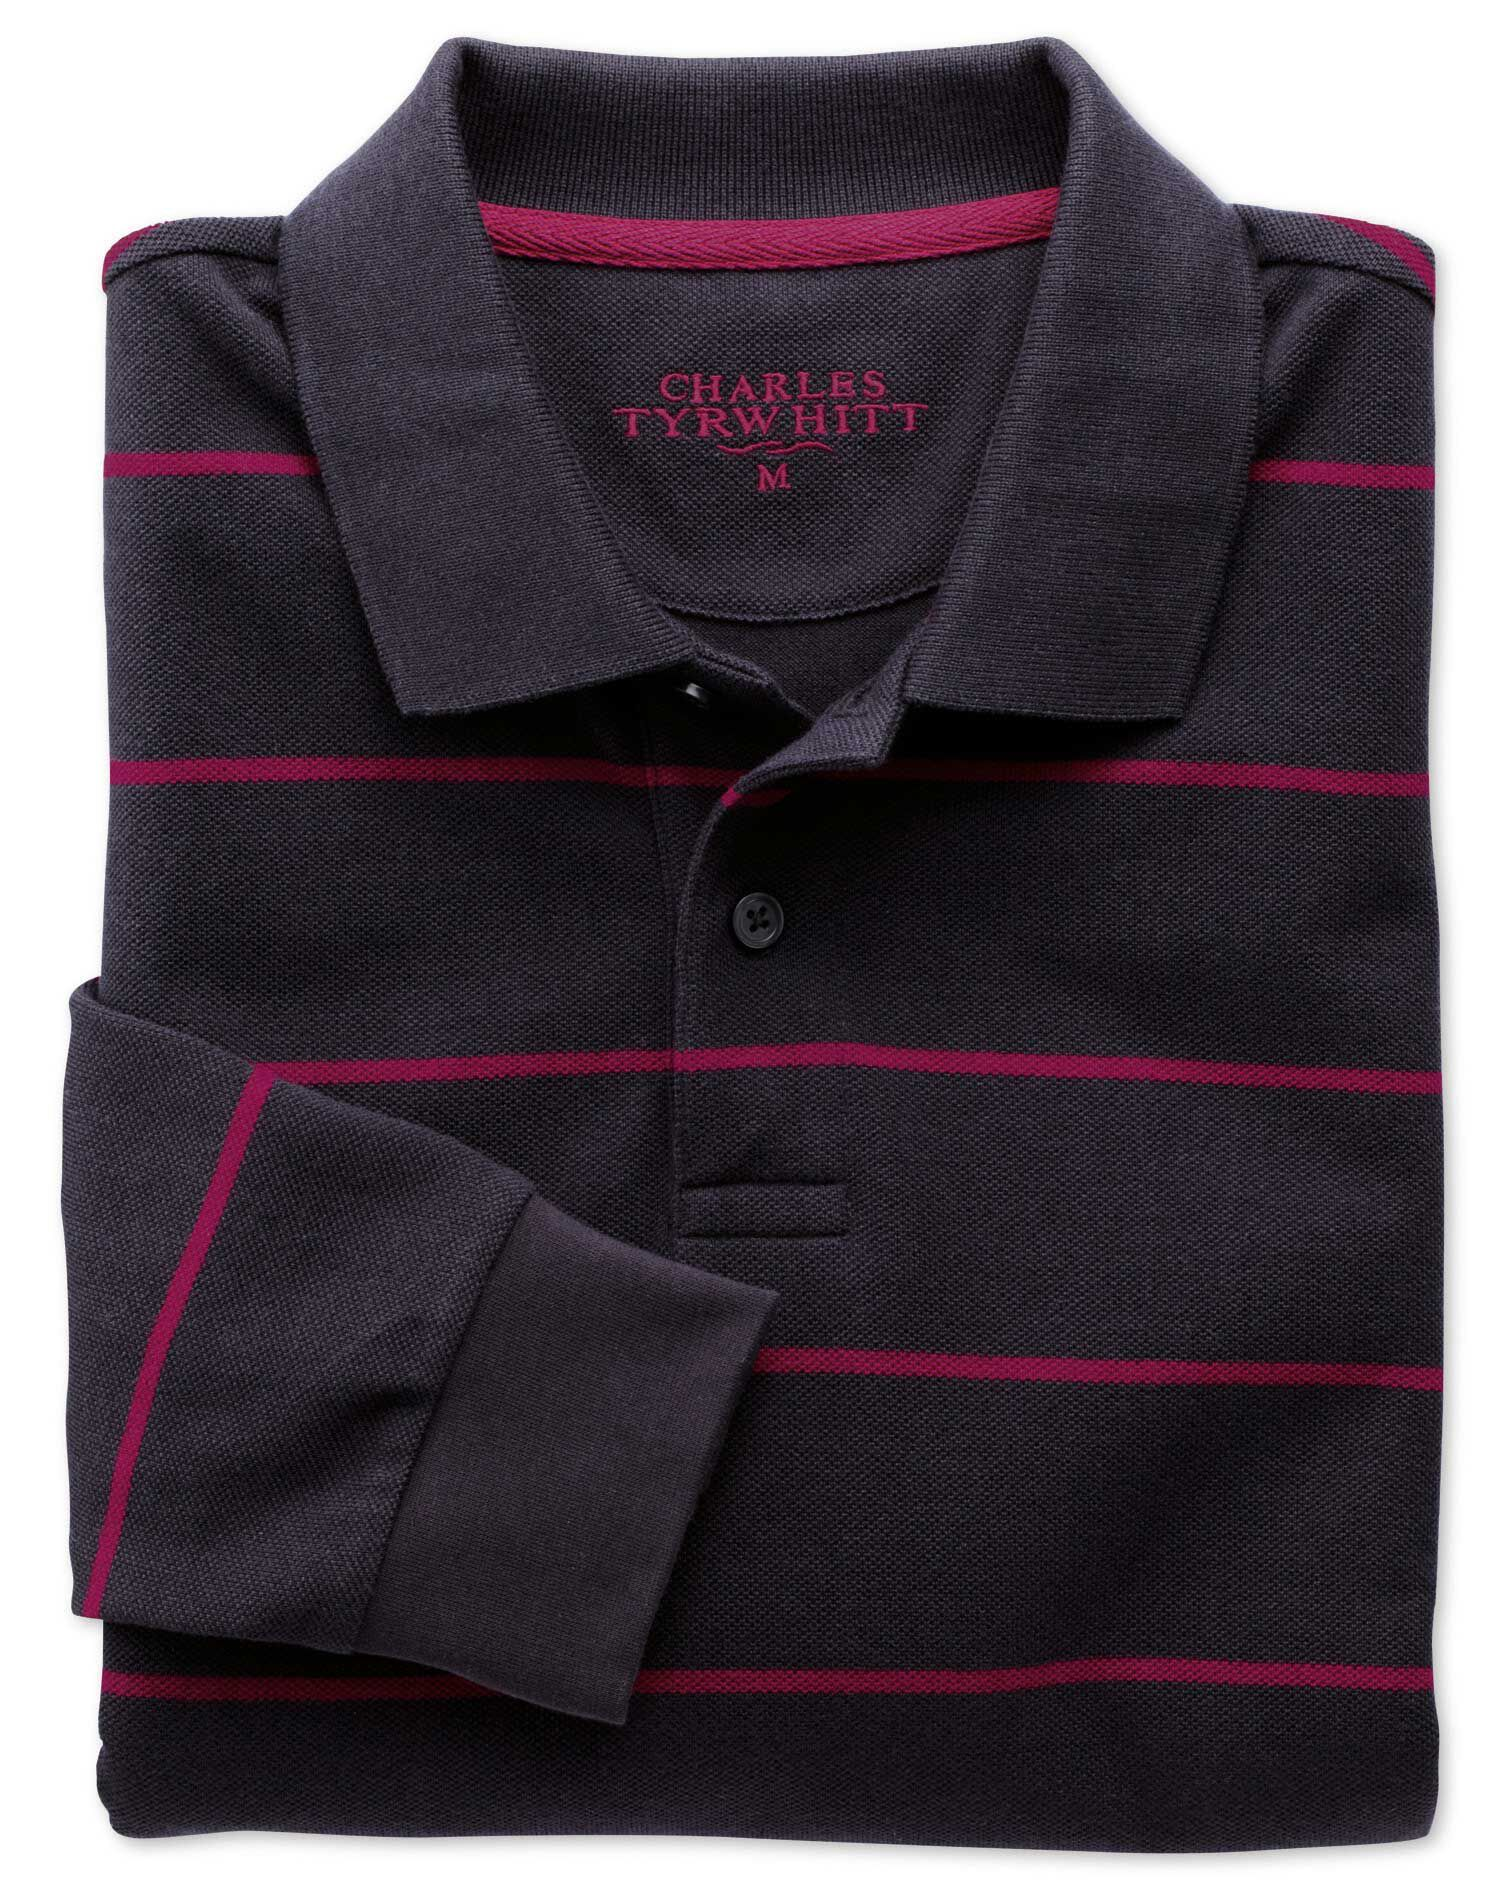 Navy and Berry Stripe Pique Long Sleeve Cotton Polo Size XS by Charles Tyrwhitt